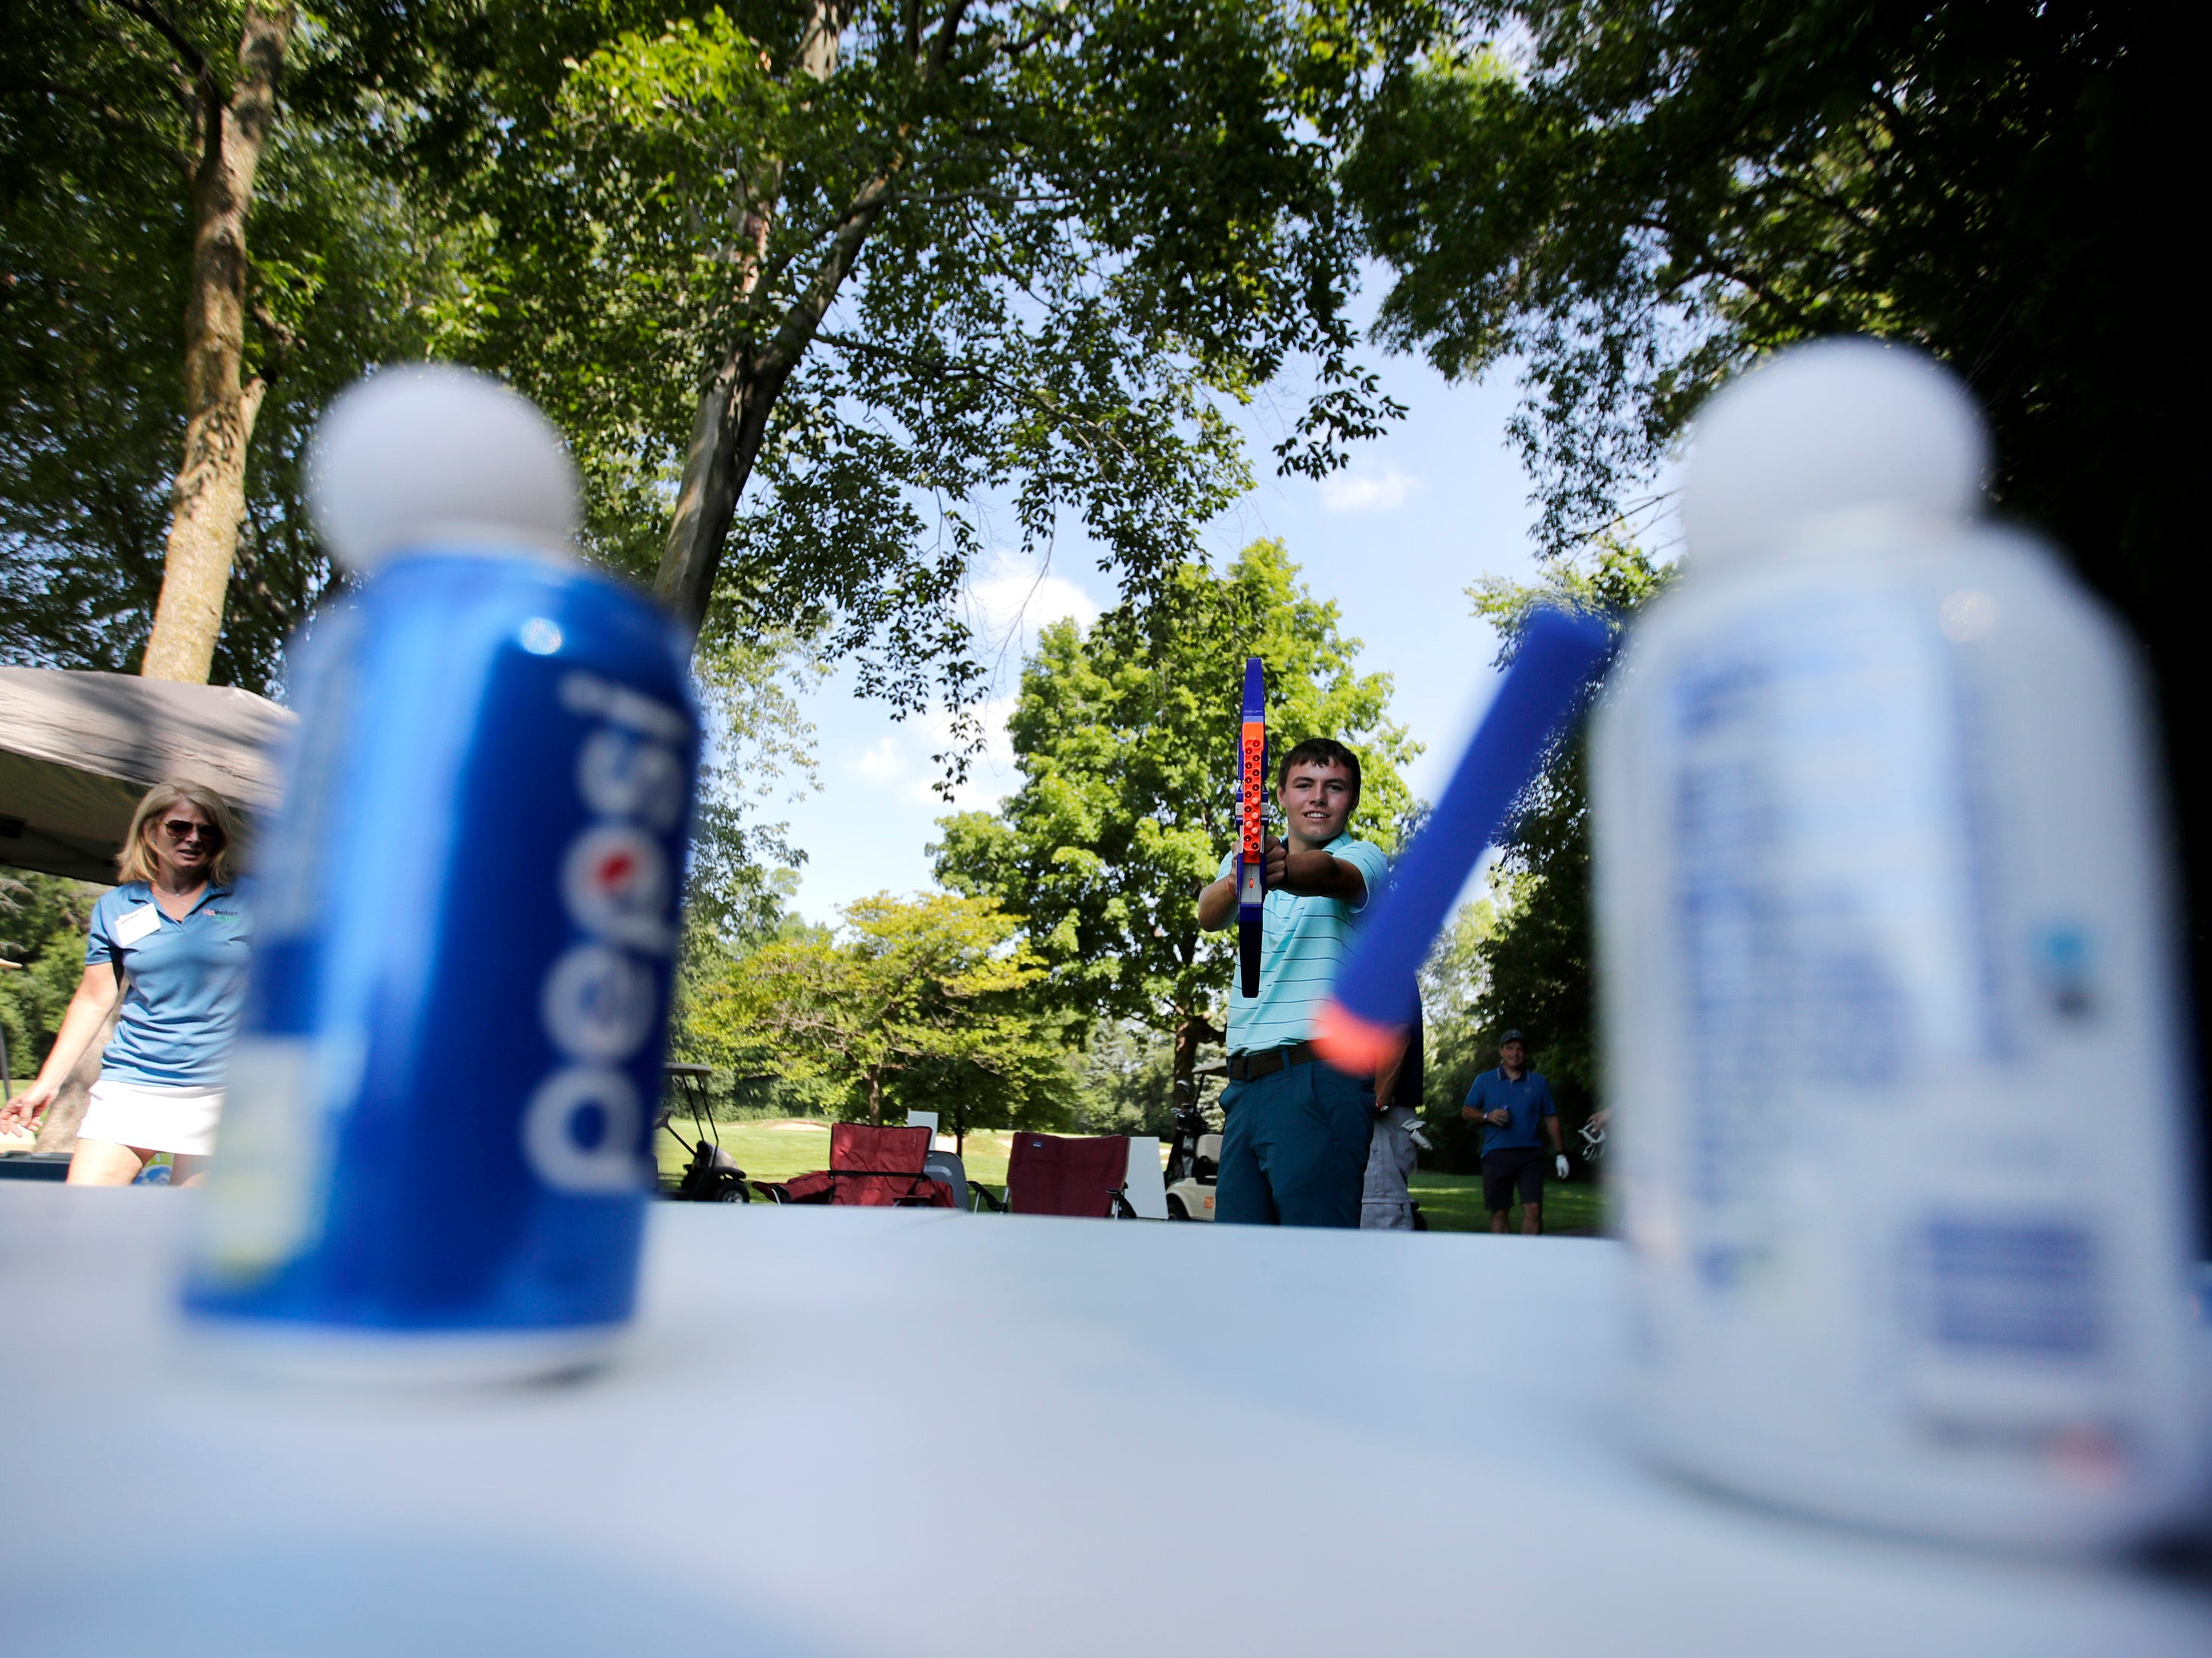 Zach Sheriff, with Fox Valley Auto Auction, plays a game before teeing off during the U.S. Venture Open Wednesday, Aug. 8, 2018, at North Shore Golf Club in Menasha, Wis.Danny Damiani/USA TODAY NETWORK-Wisconsin